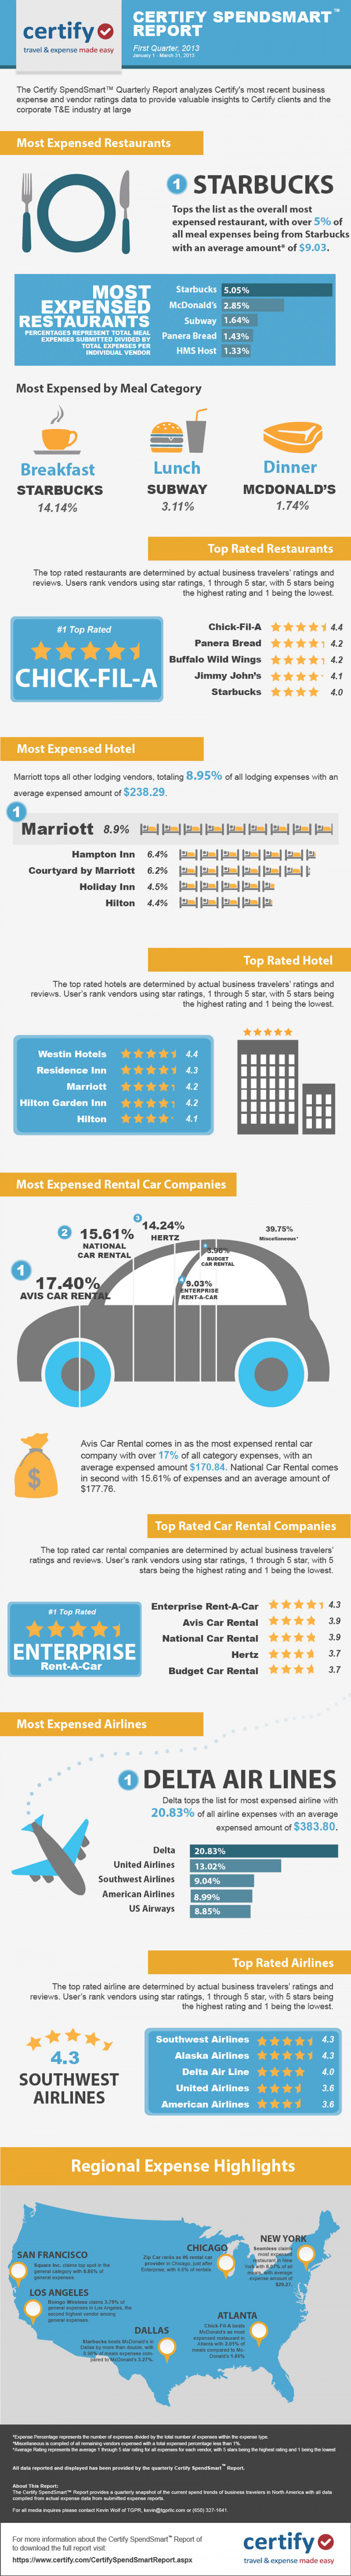 CERTIFY SPENDSMART™ REPORT: Quarter 1, 2013 Infographic